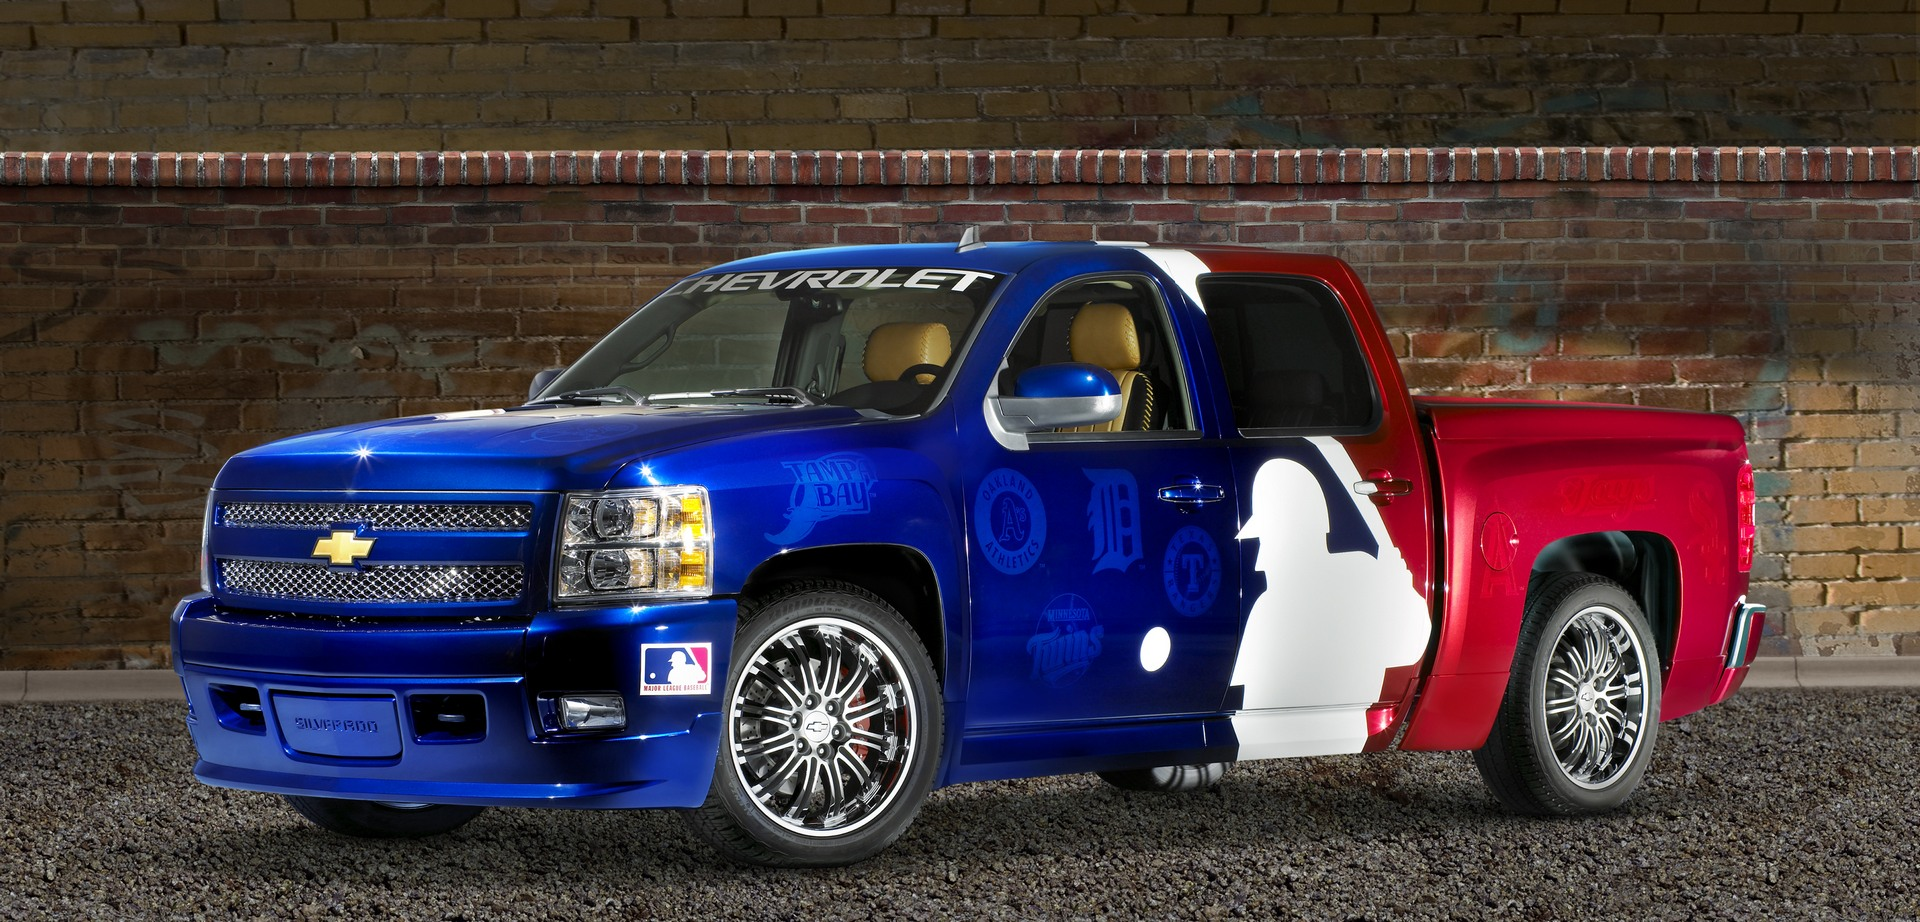 2007 Chevrolet Major League Baseball Silverado History Pictures 1961 Chevy Truck Lifted Value Auction Sales Research And